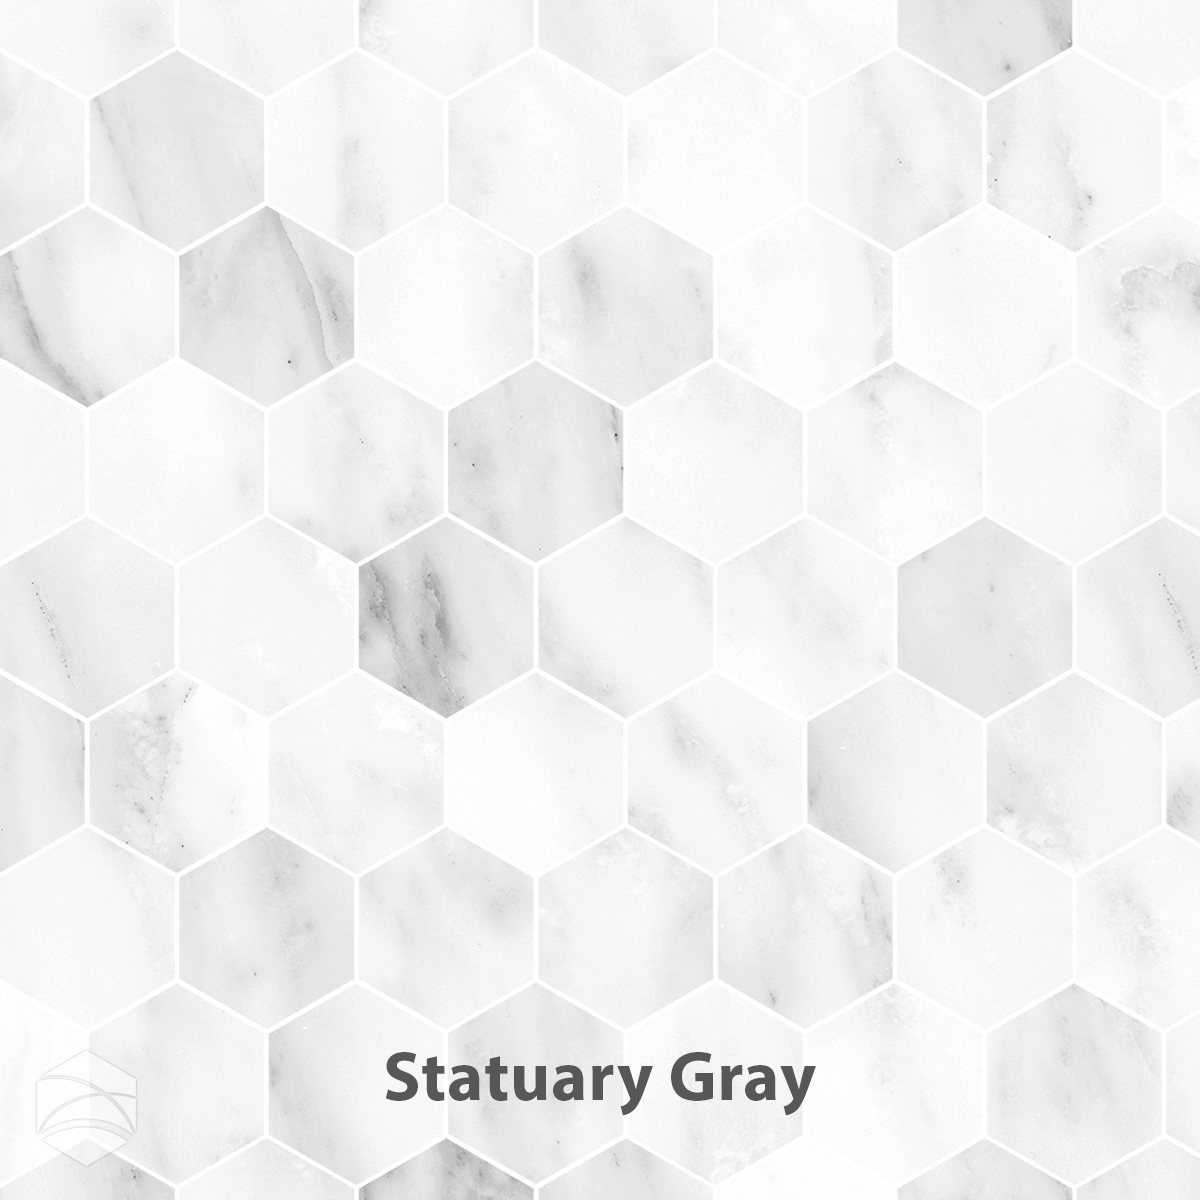 Statuary Gray_2 in hex_V2_12x12.jpg